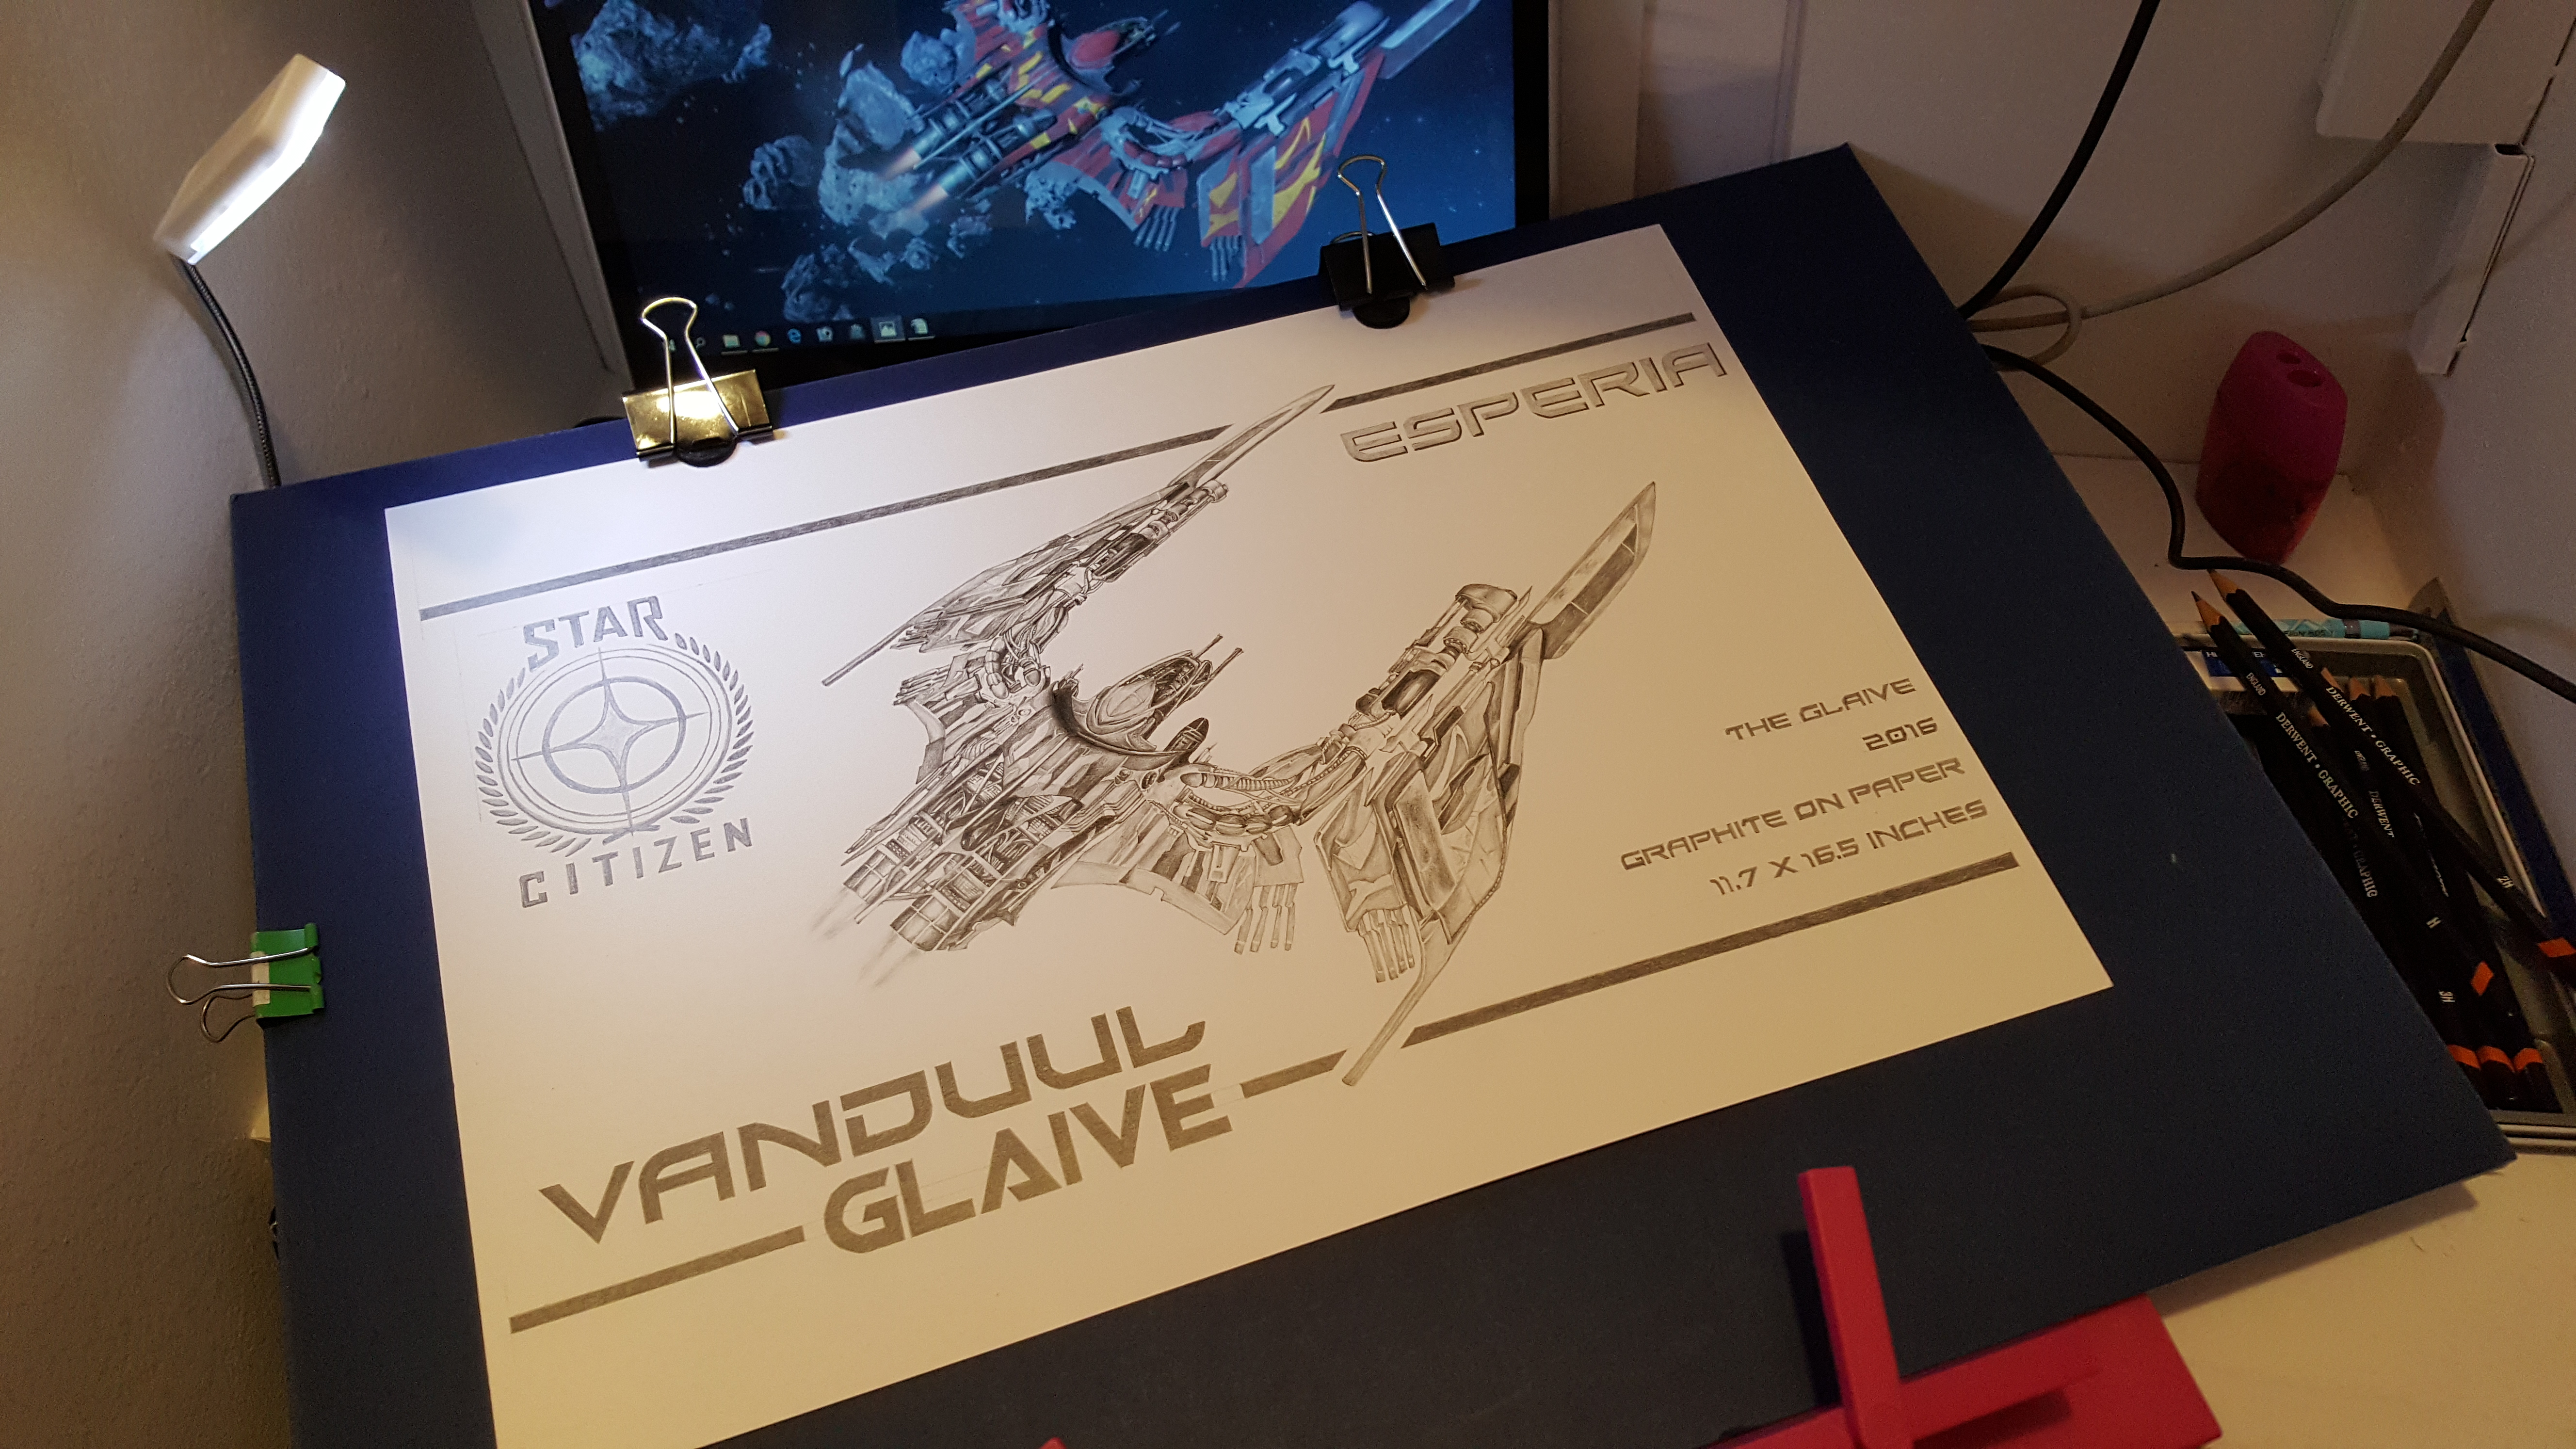 Citizen spotlight - Esperia Vanduul Glaive Graphite (Pencil) Drawing